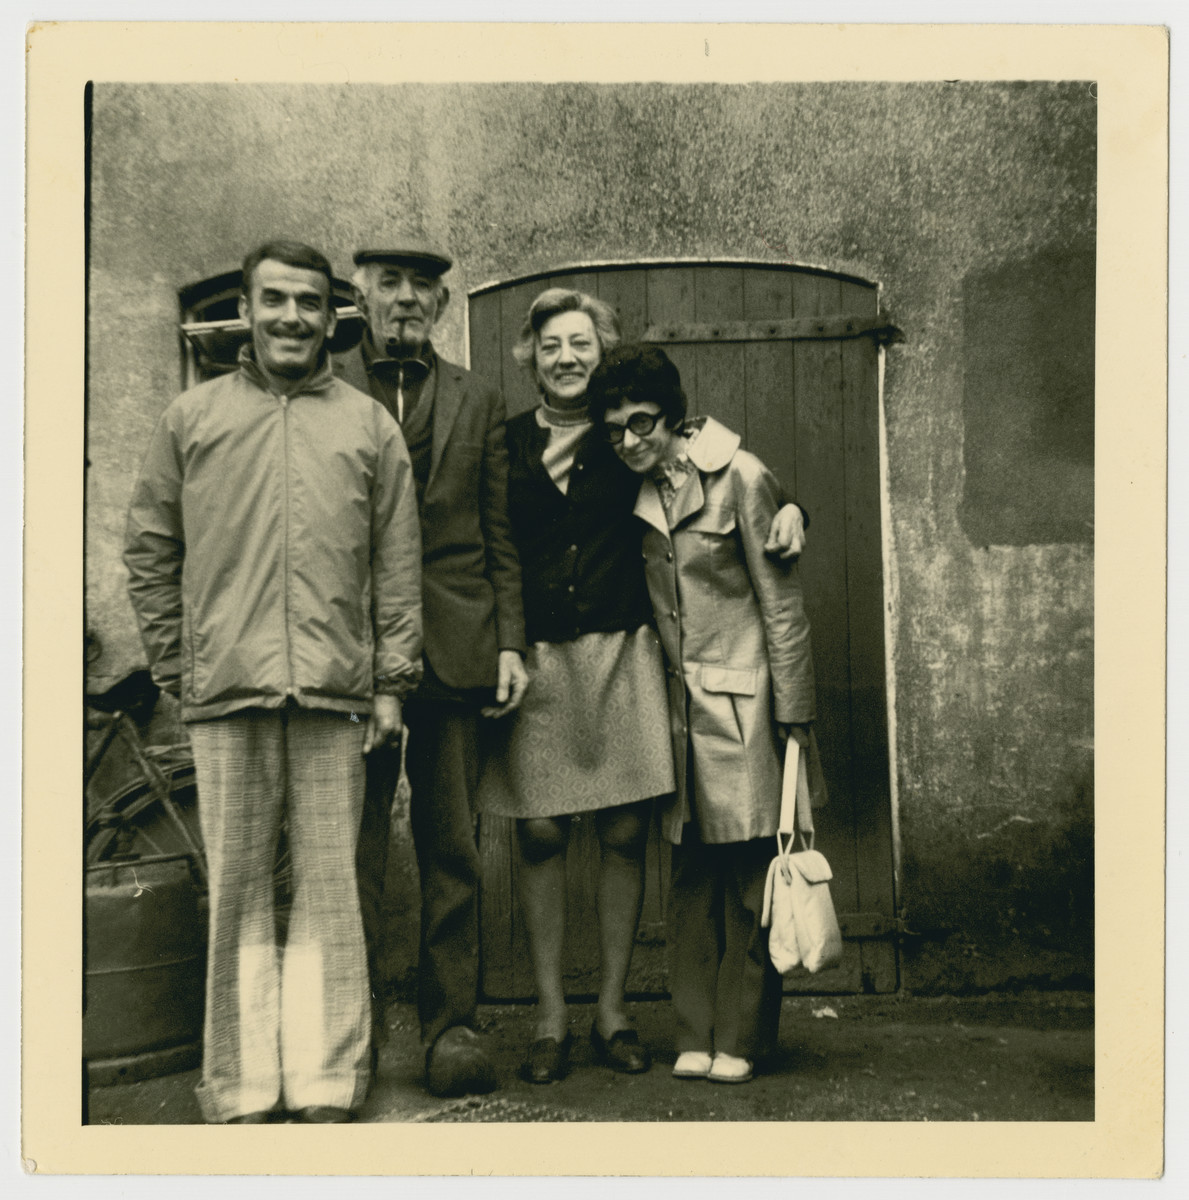 Betty Cohen (formerly Straus) pays a visit to her wartime rescuers.  From left to right are Rudi Cohen (Betty's husband), Joep Garben, Agnes Garben, and Betty Cohen.